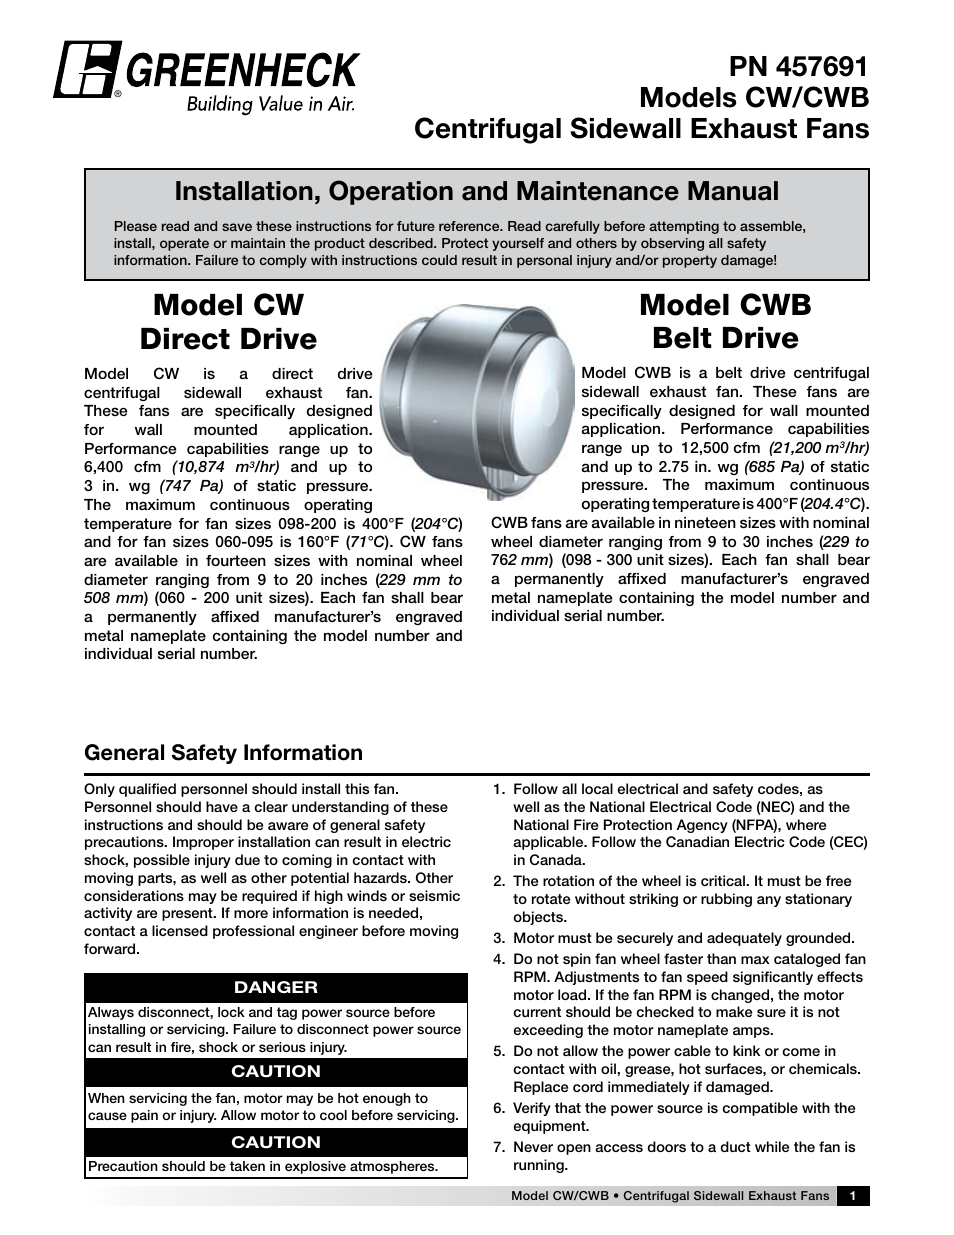 Greenheck Fan Centrifugal Sidewall Exhaust Fans CWCWB User Manual